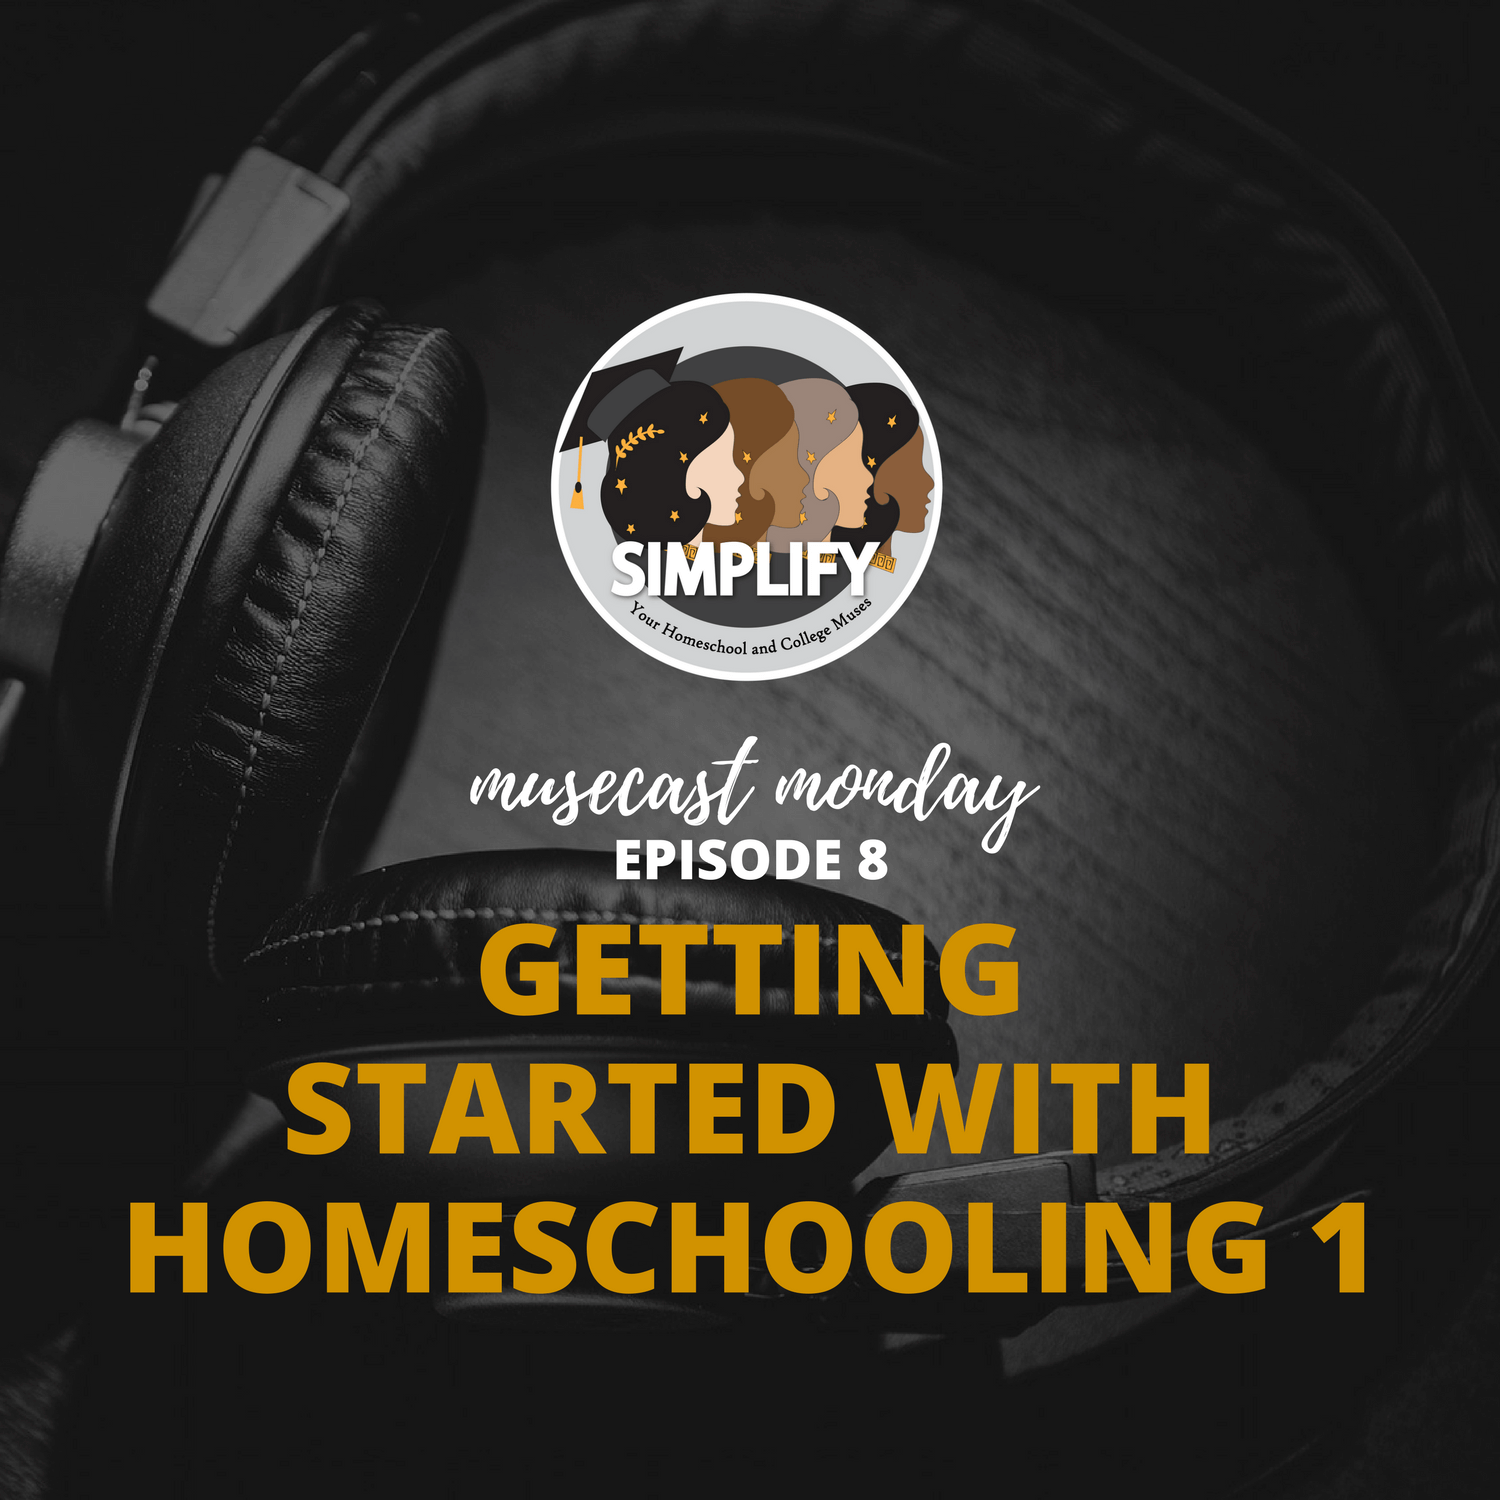 Getting Started with Homeschooling Part 1